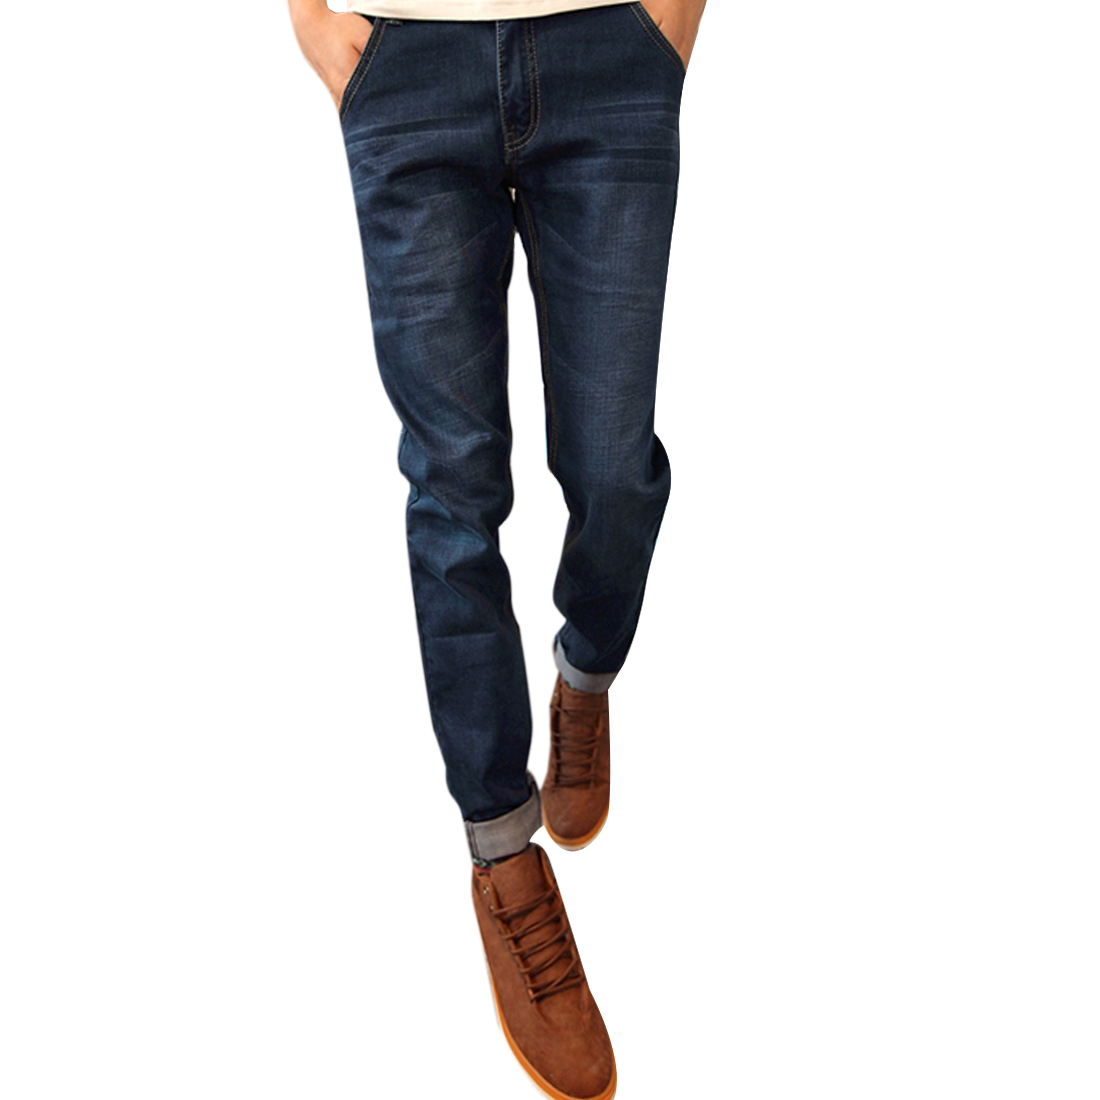 Men Slim Fit Waistband Loop Pockets Straight Long Jeans Dark Blue W35